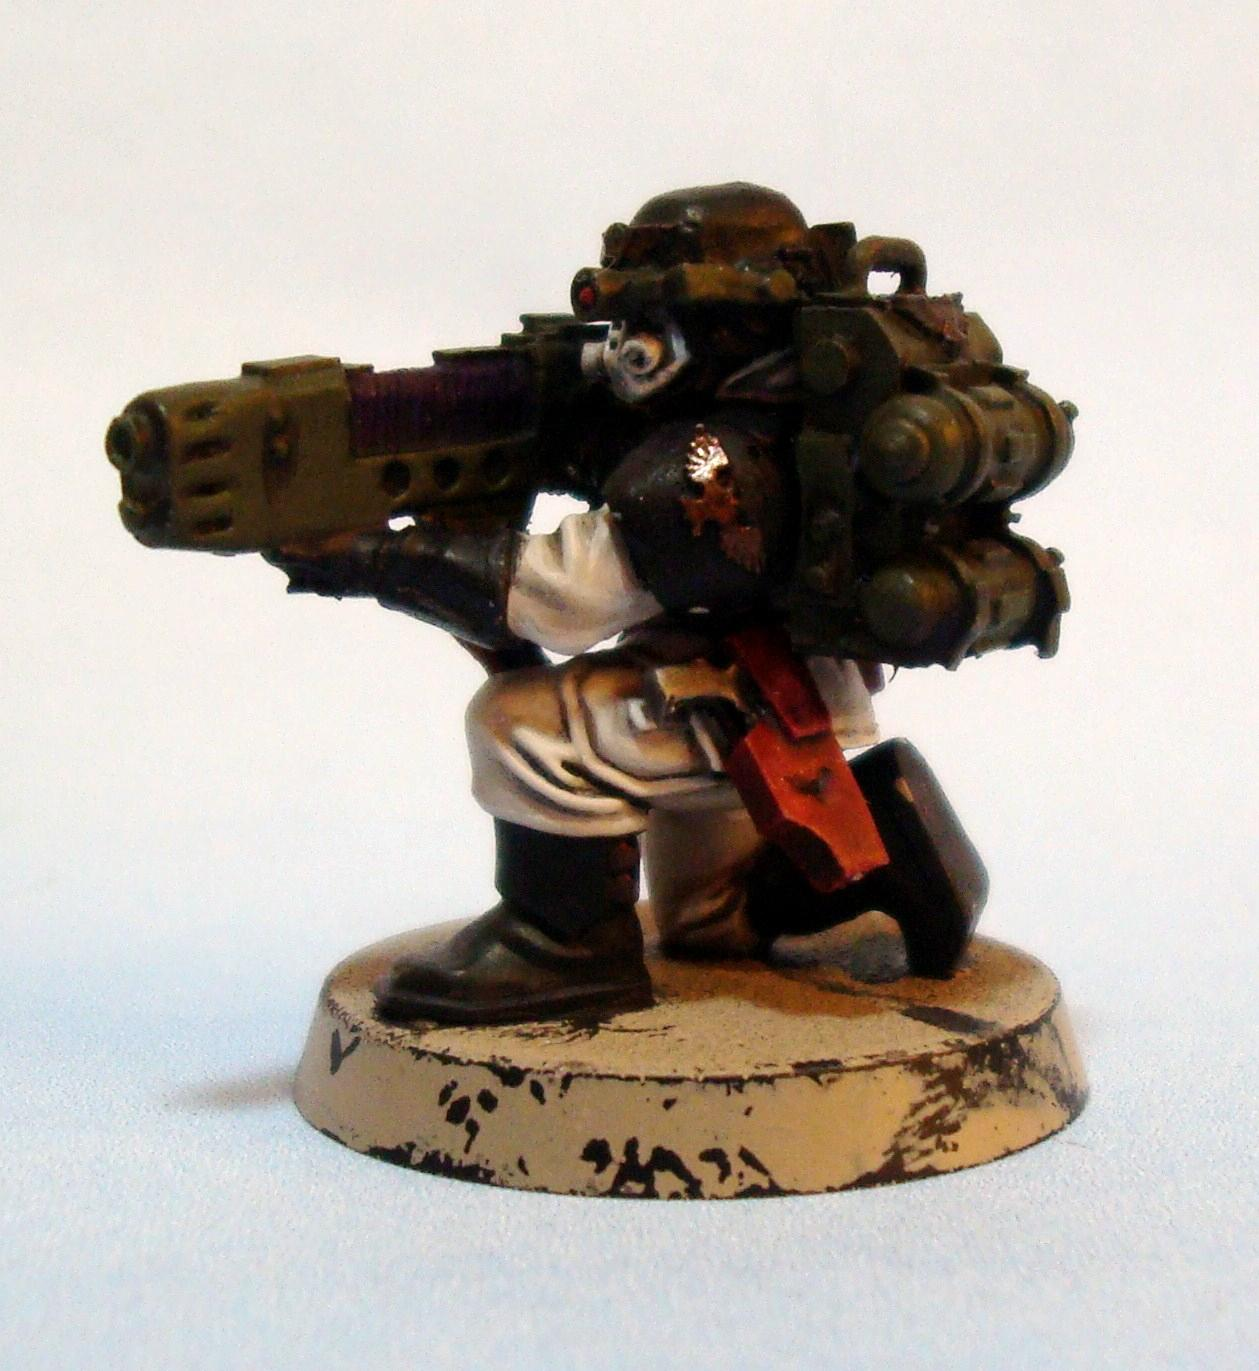 Imperial Guard, Special Weapons., Warhammer 40,000